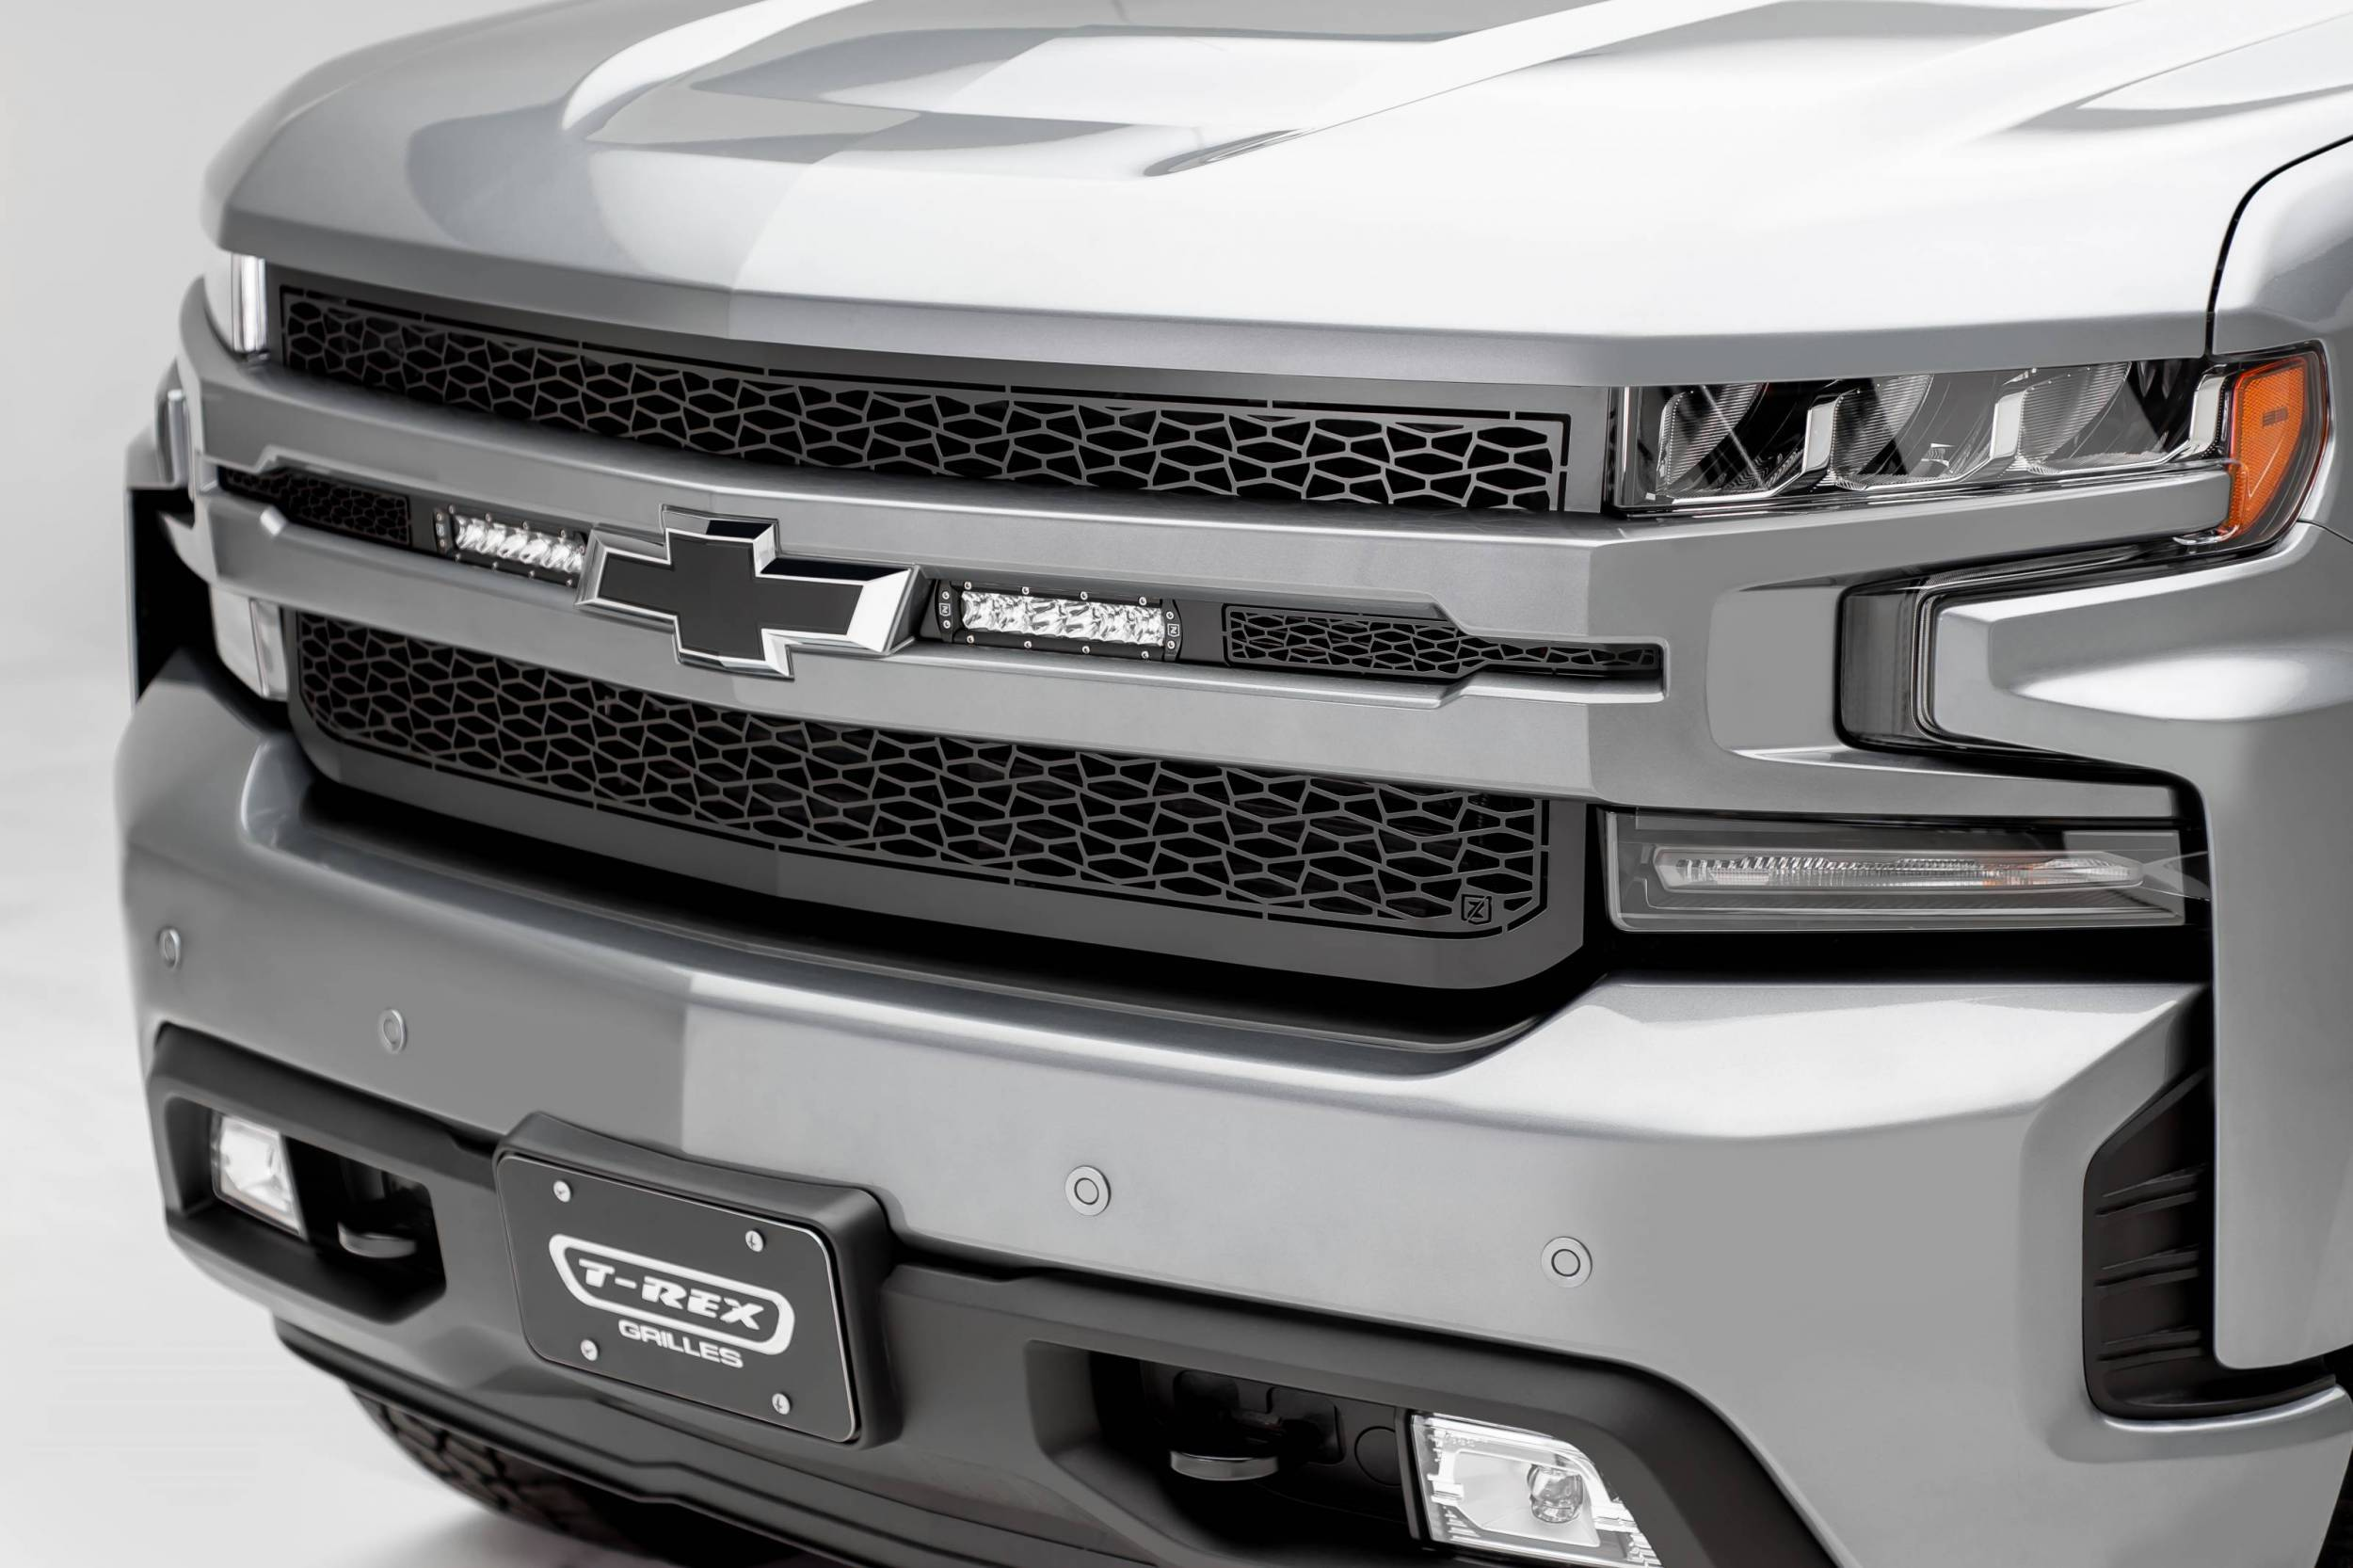 """ZROADZ OFF ROAD PRODUCTS - 2019-2021 Silverado 1500 ZROADZ Grille, Black, 1 Pc, Replacement with (2) 6"""" LEDs, Does Not Fit Vehicles with Camera - PN #Z311261"""